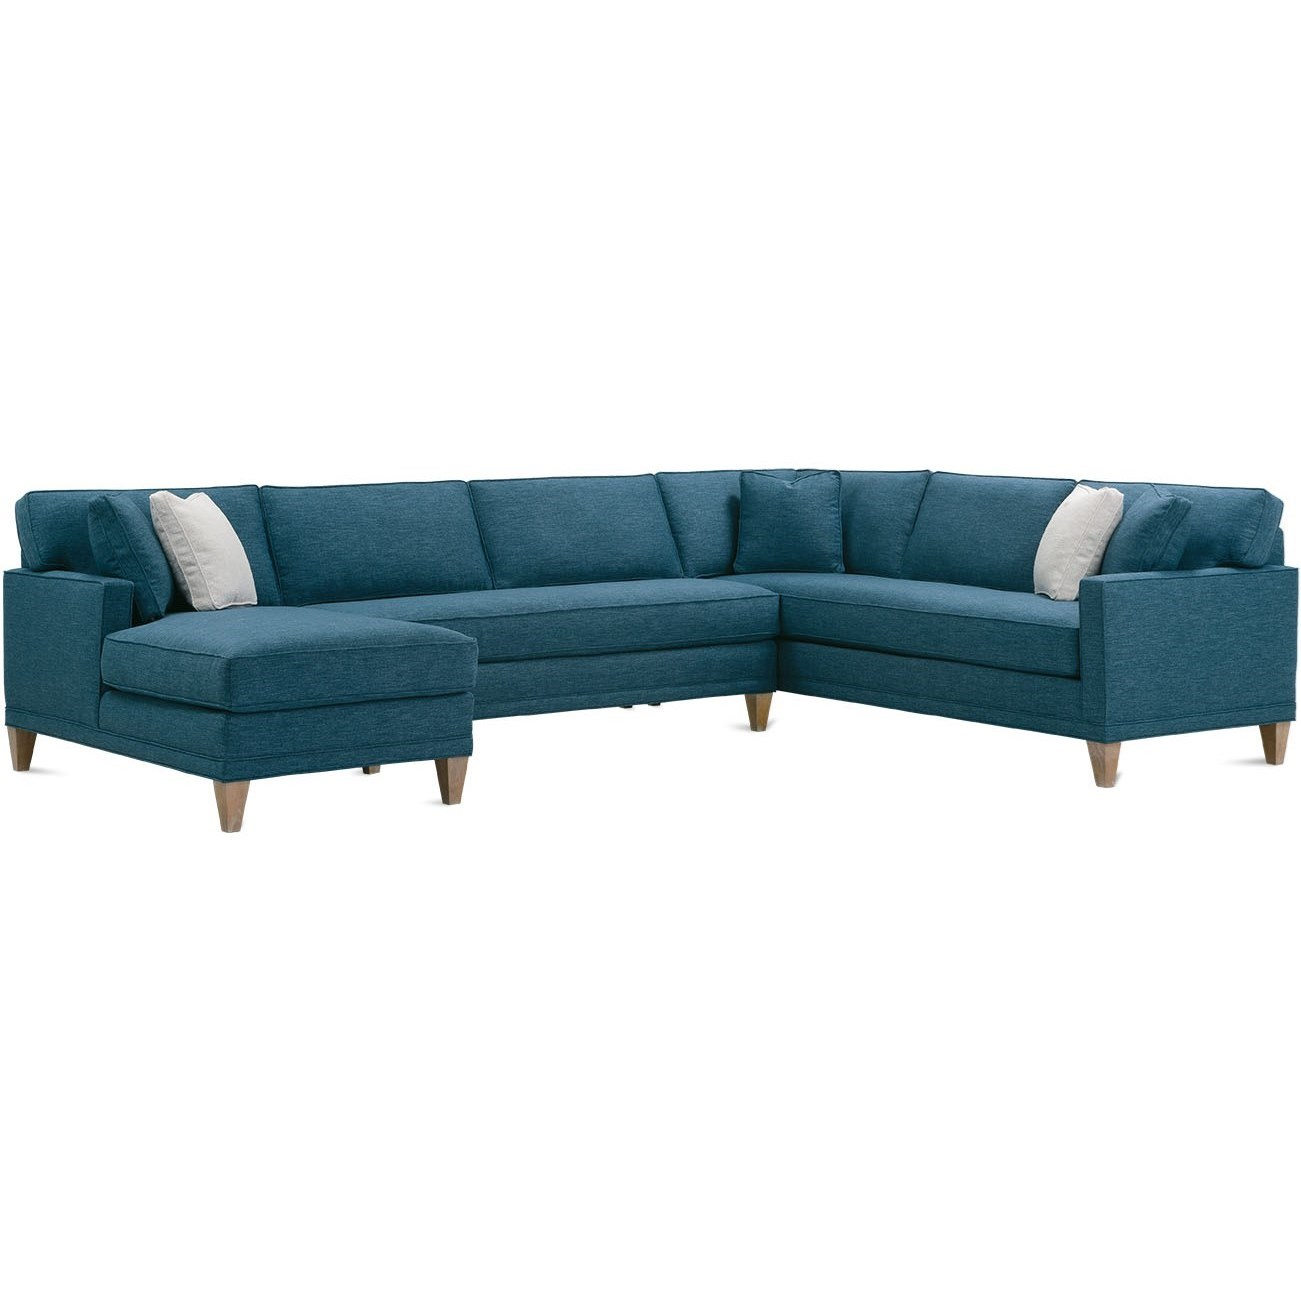 Townsend 3-Piece Bench Cushion Sectional by Rowe at Bullard Furniture